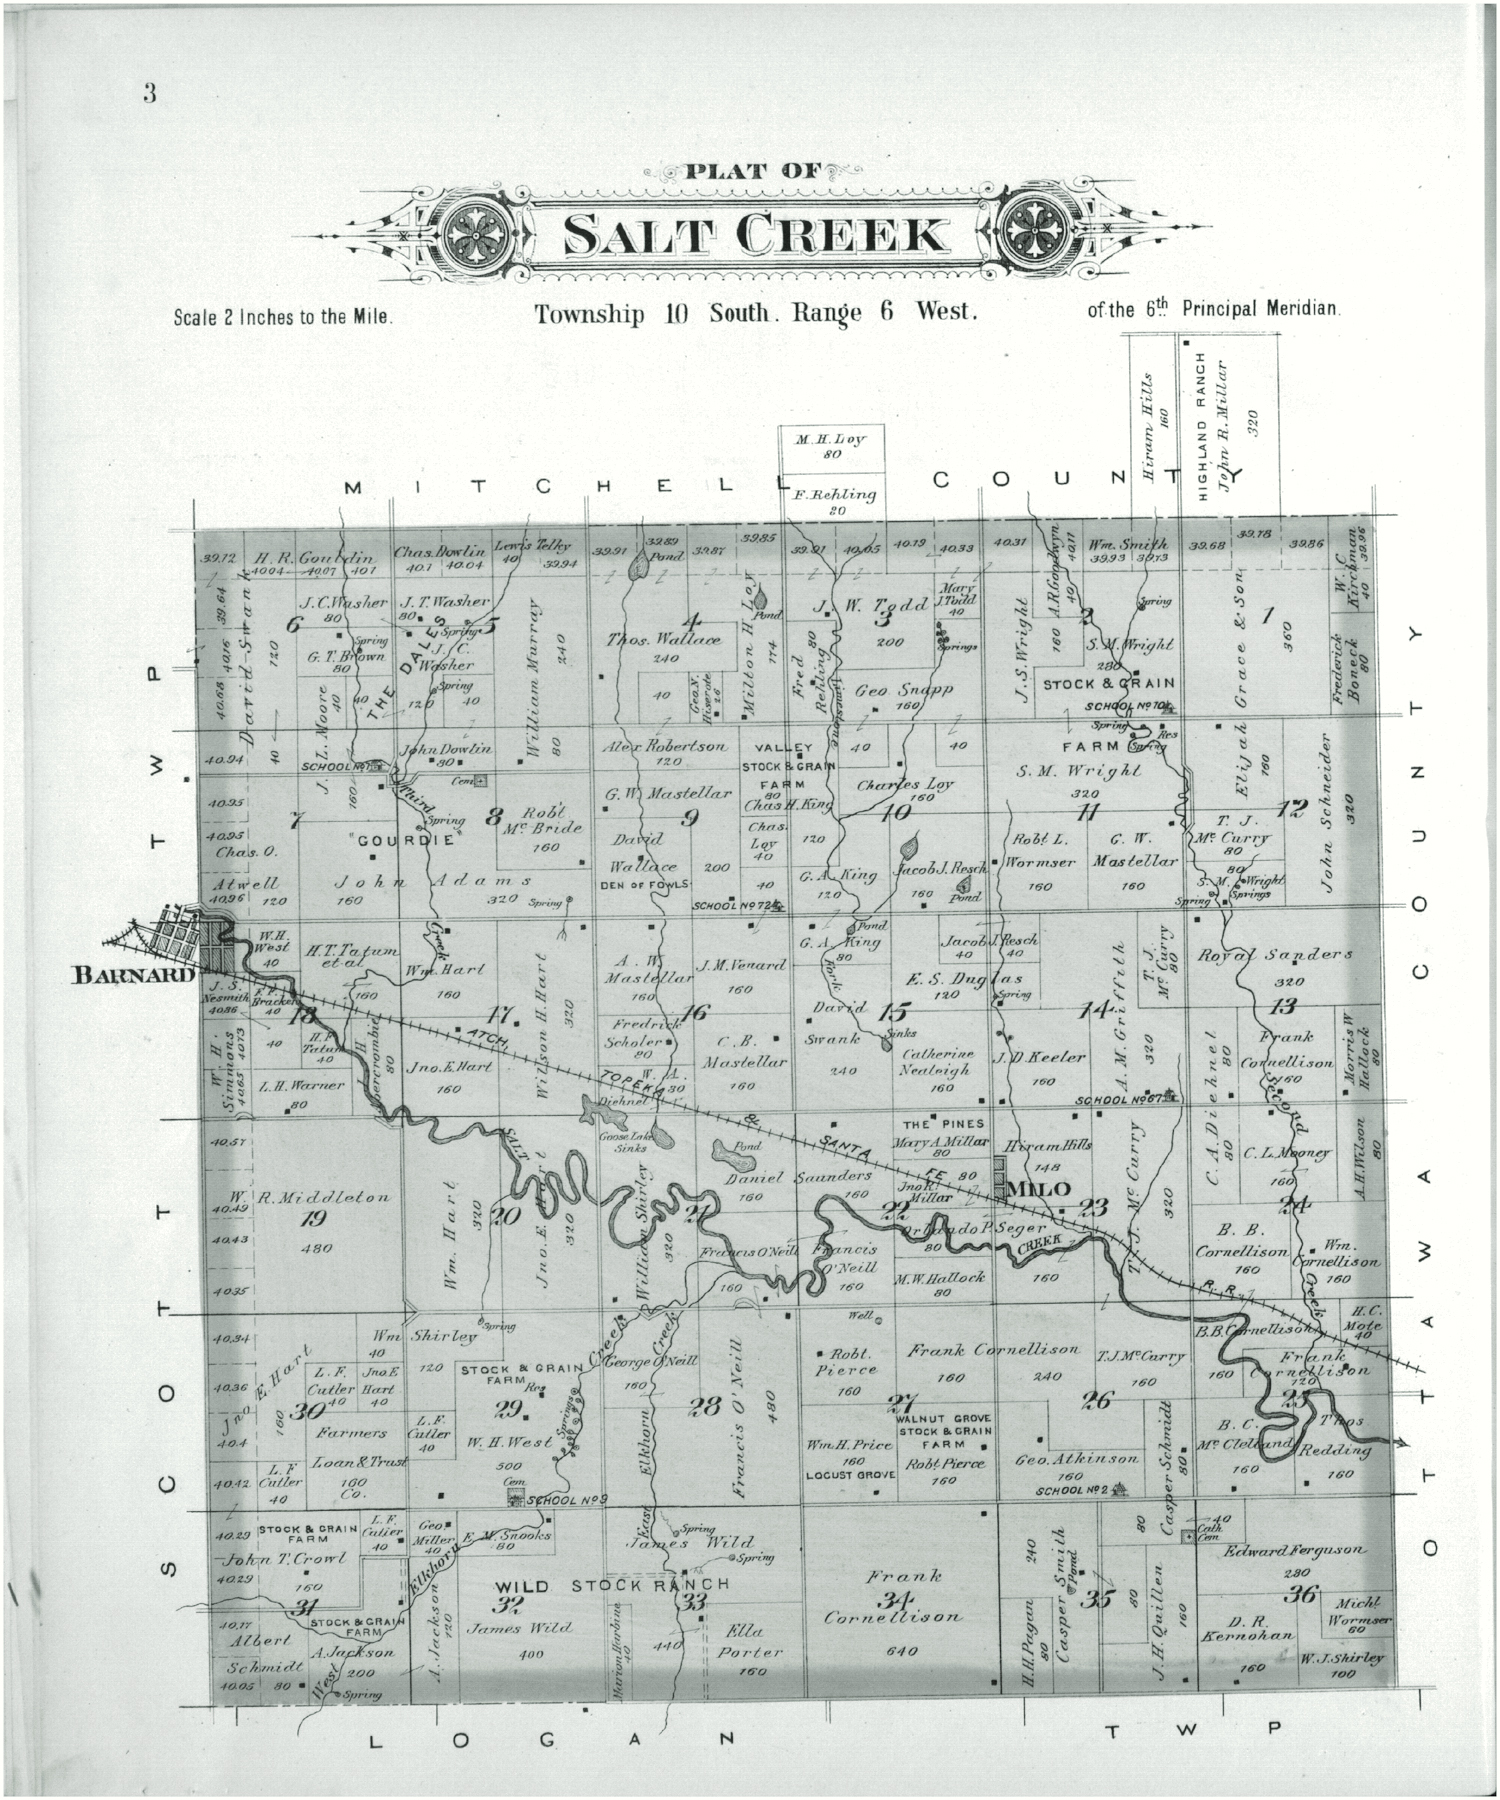 Plat book of Lincoln County, Kansas - 3